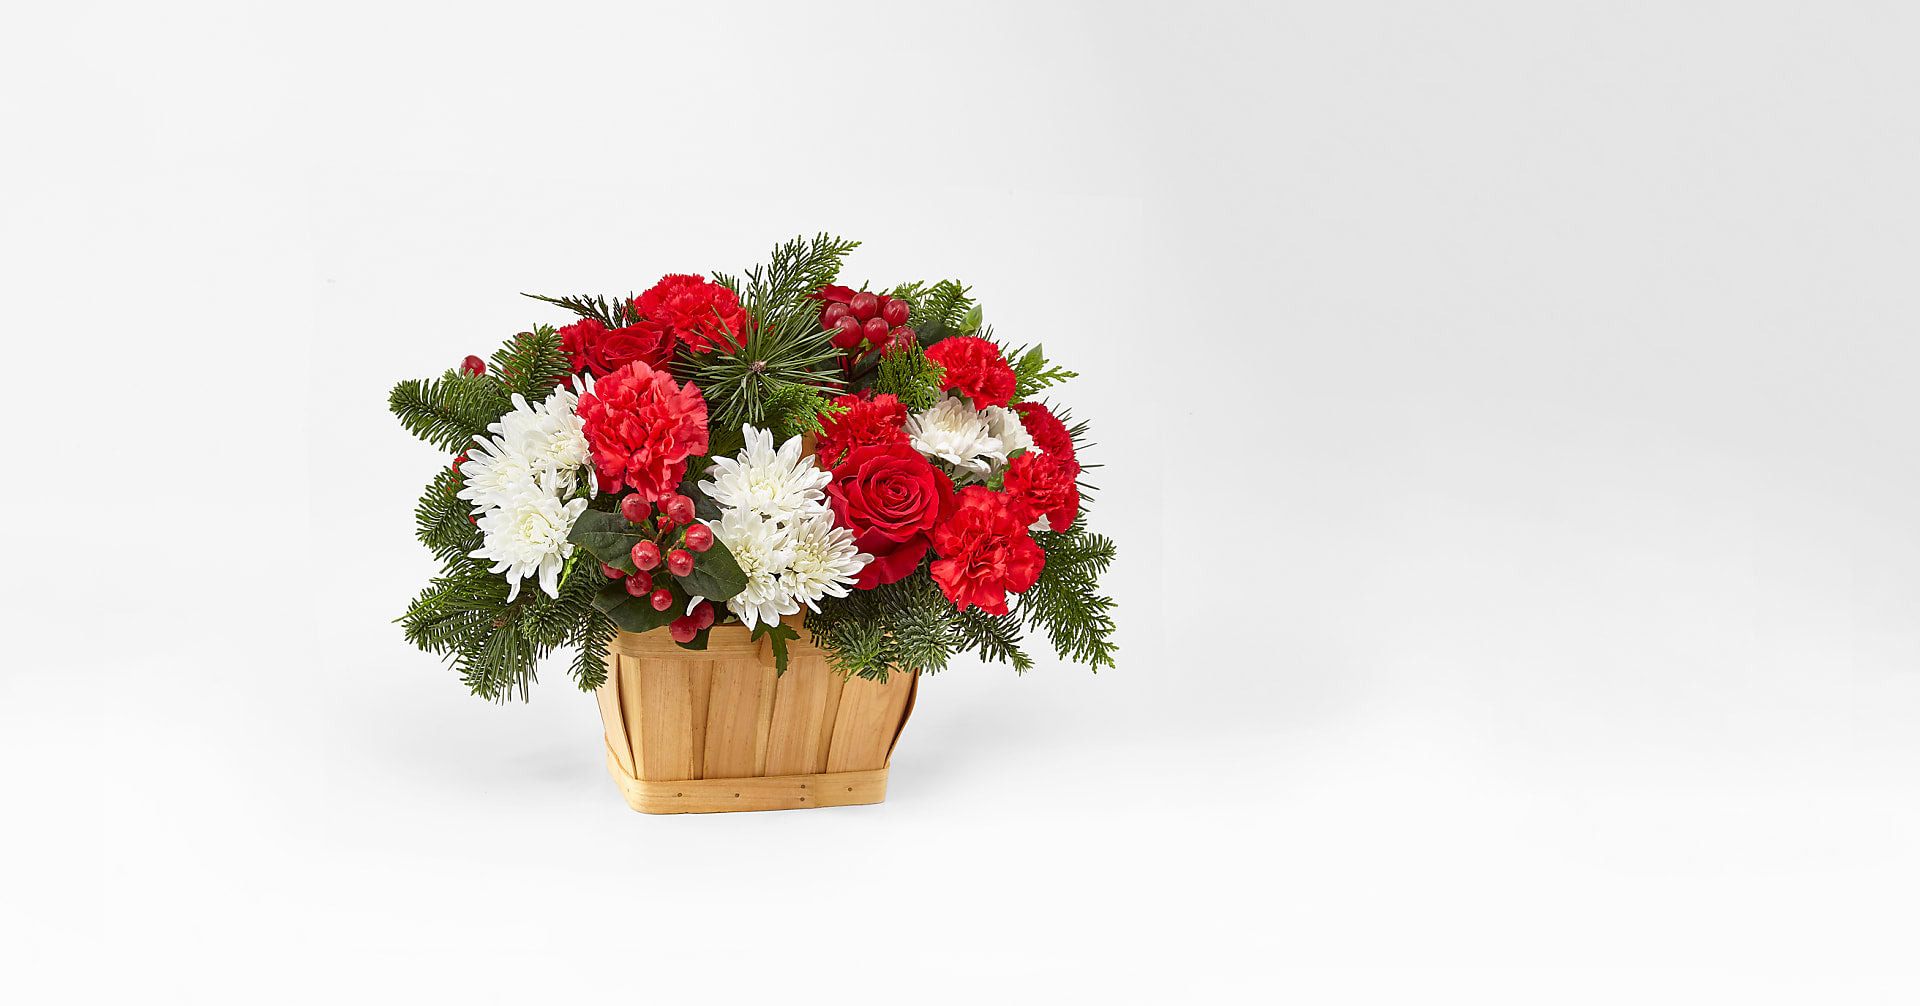 Good Tidings Floral Basket - Image 1 Of 2